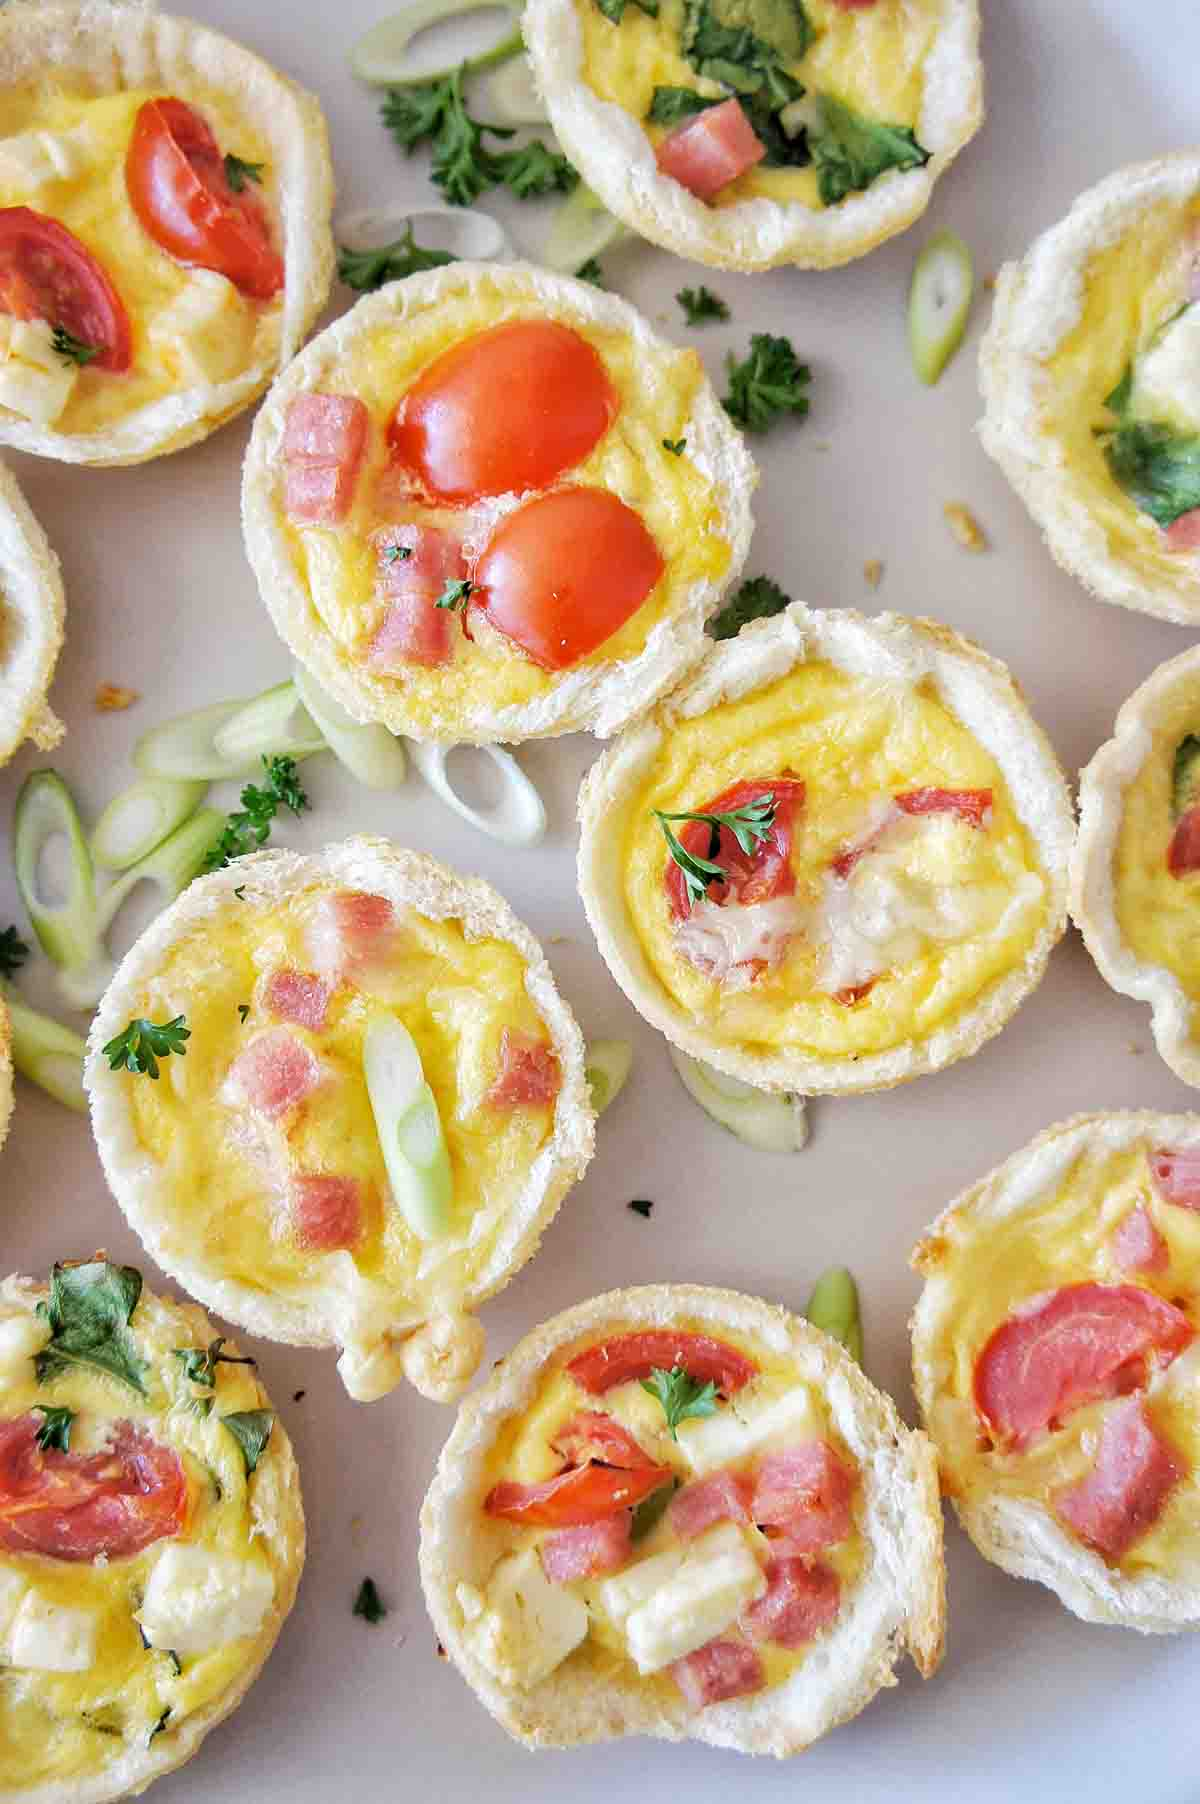 Mini quiches on a pale cream plate garnished with sliced shallots